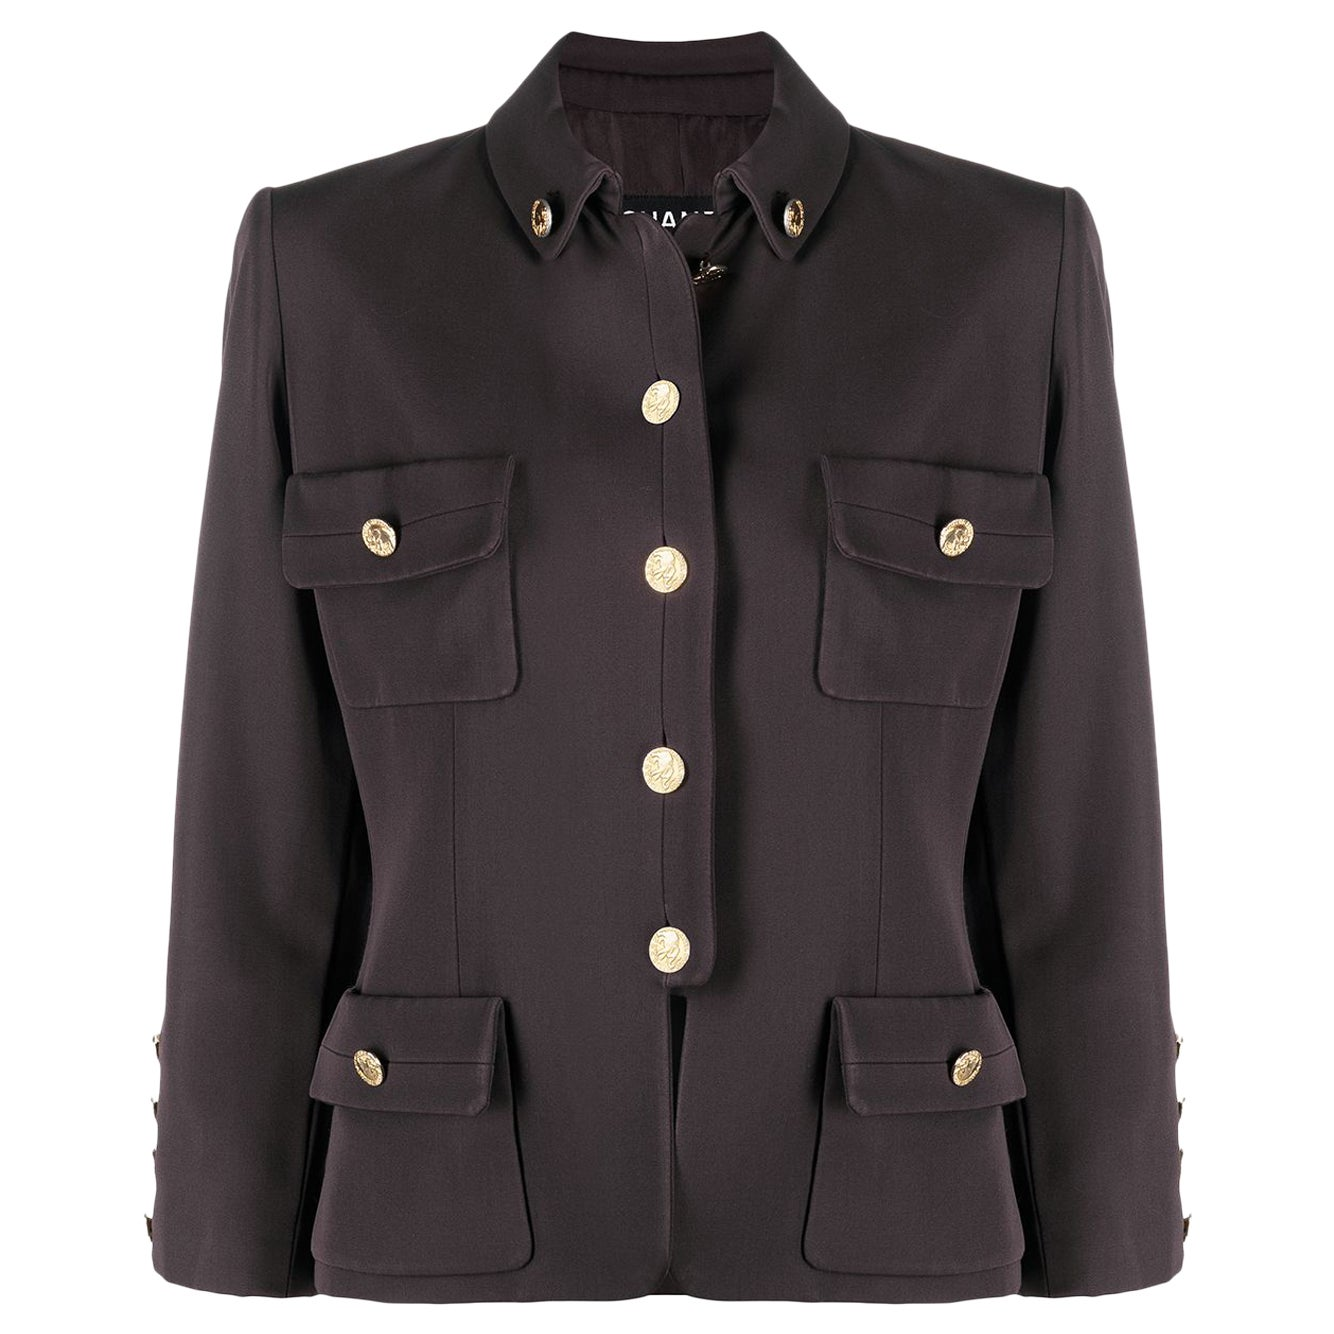 Chanel Brown Wool Military Jacket and Elephant Buttons